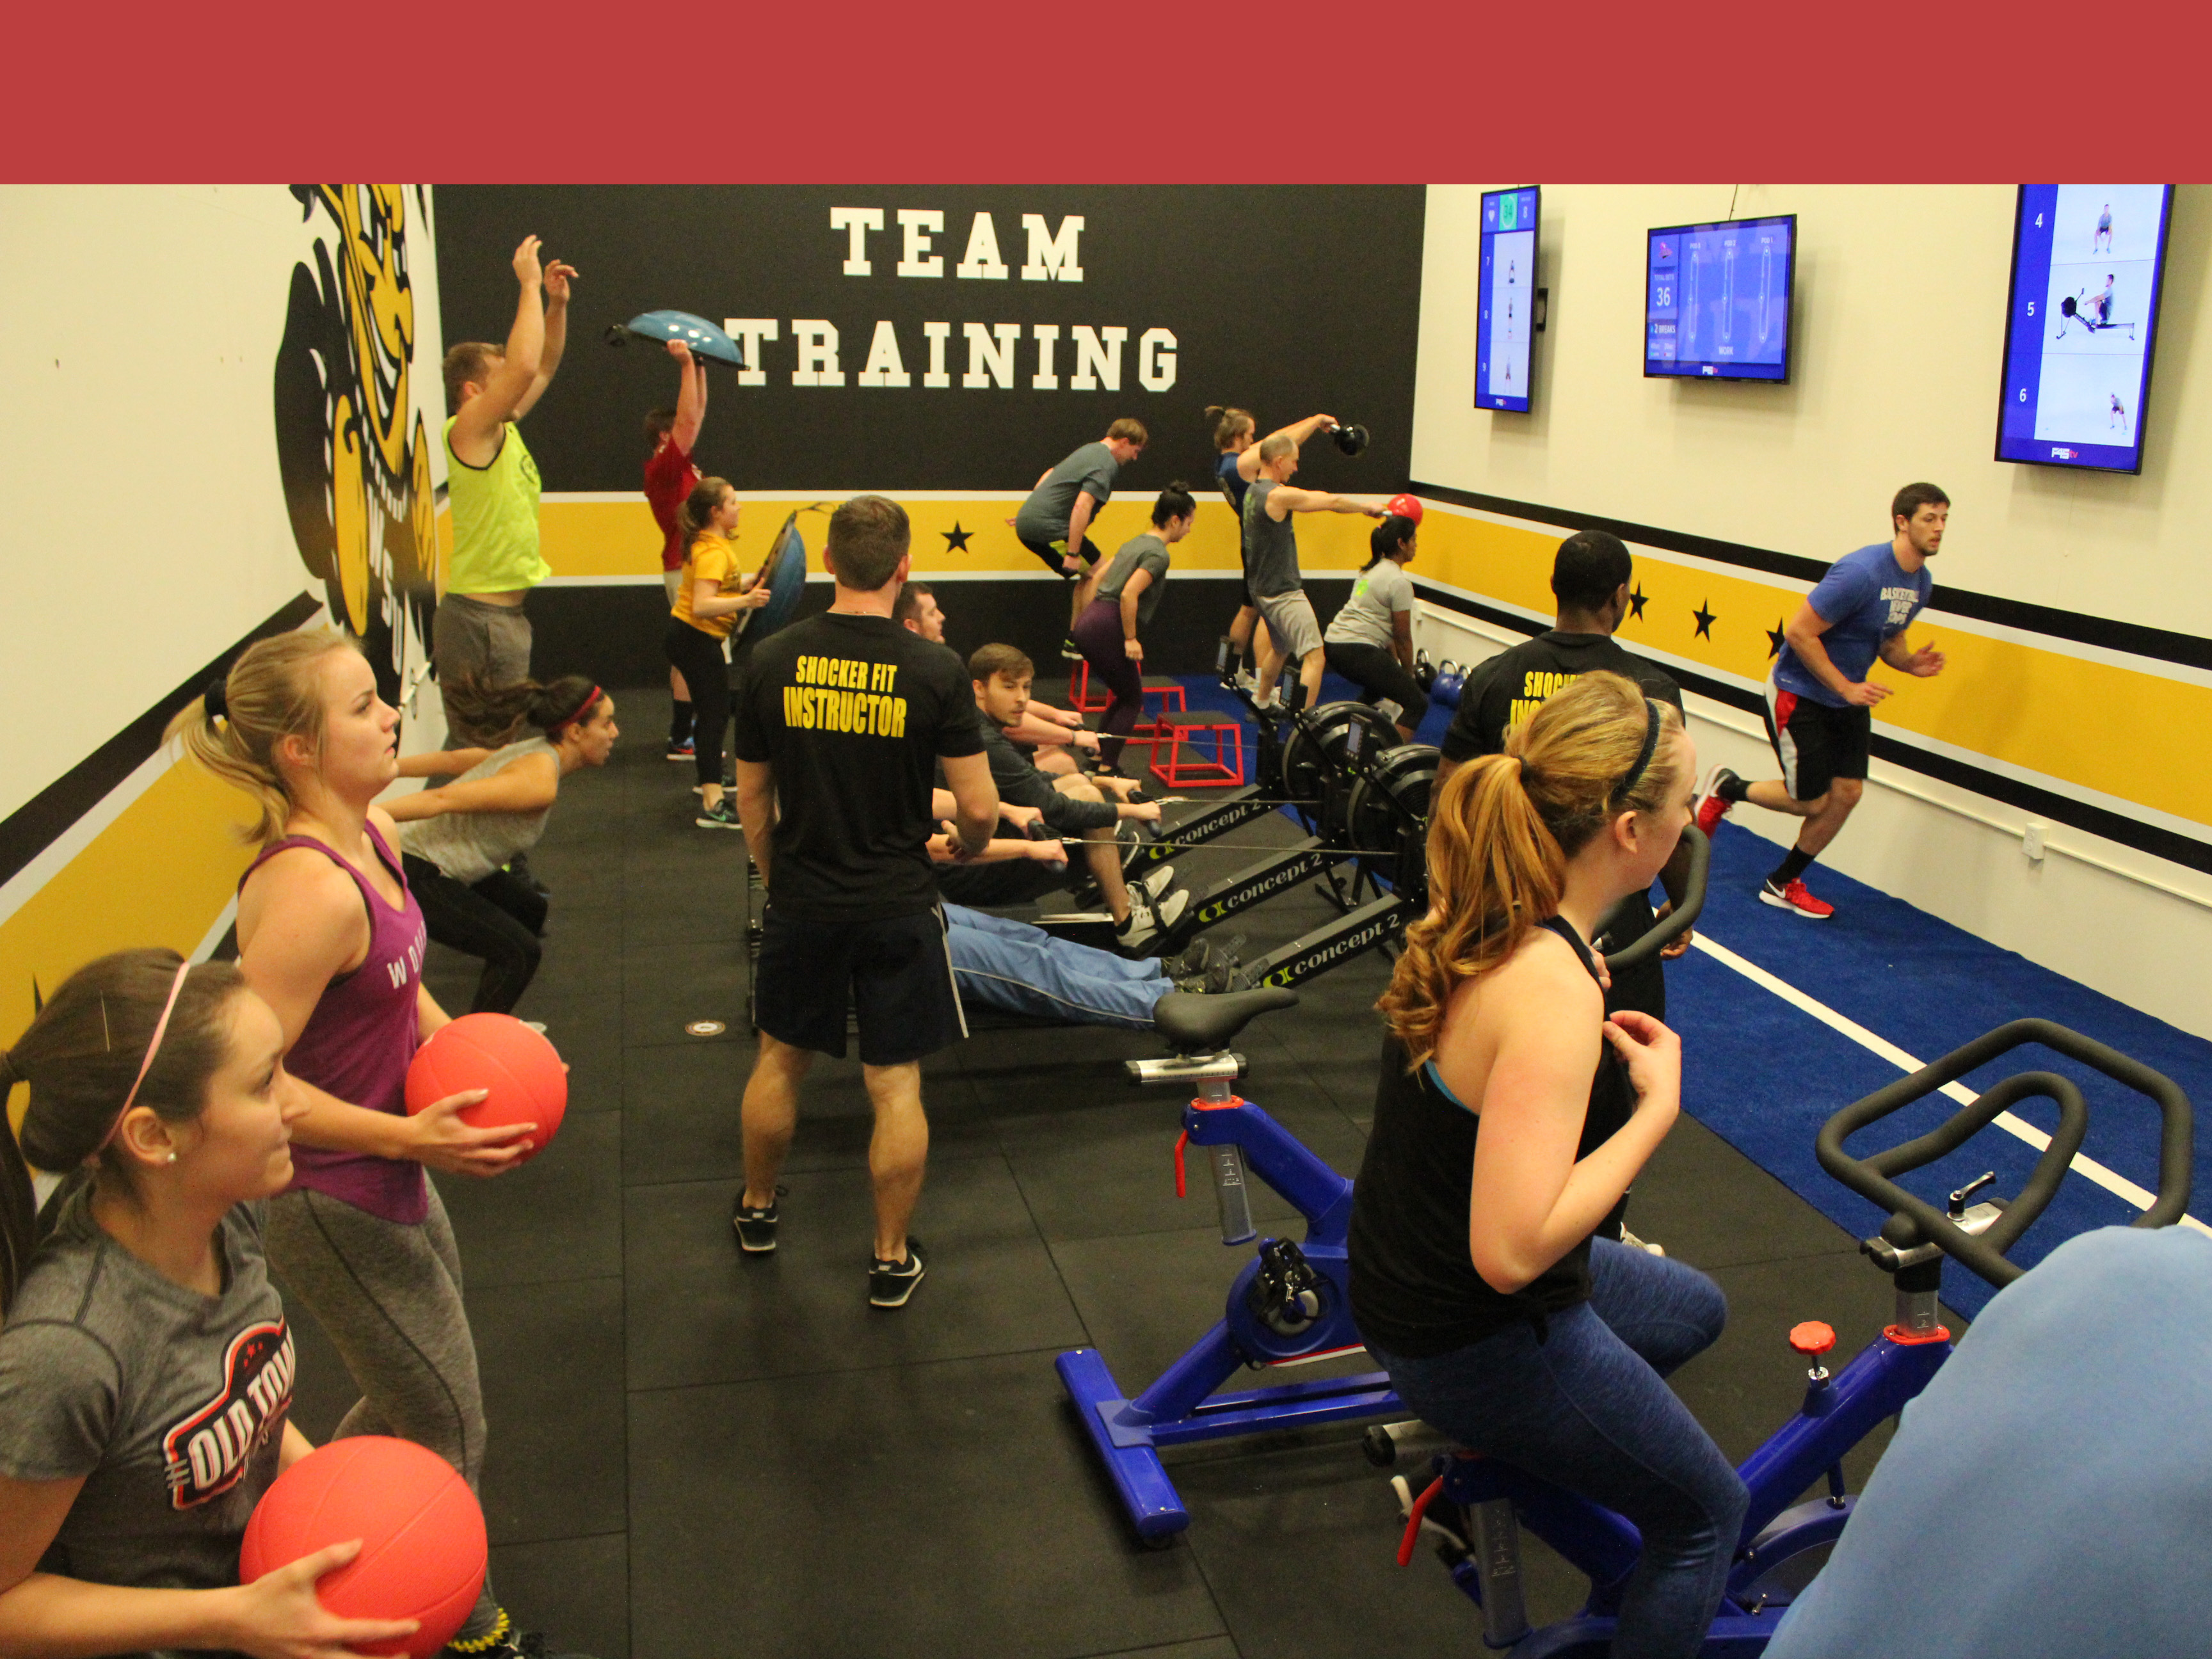 Group of people participating in F45 class. There are lots of excersizes going on, including bliking, medicine ball, kettleball, running, and rowing machine. the instructor is walking through this mess.